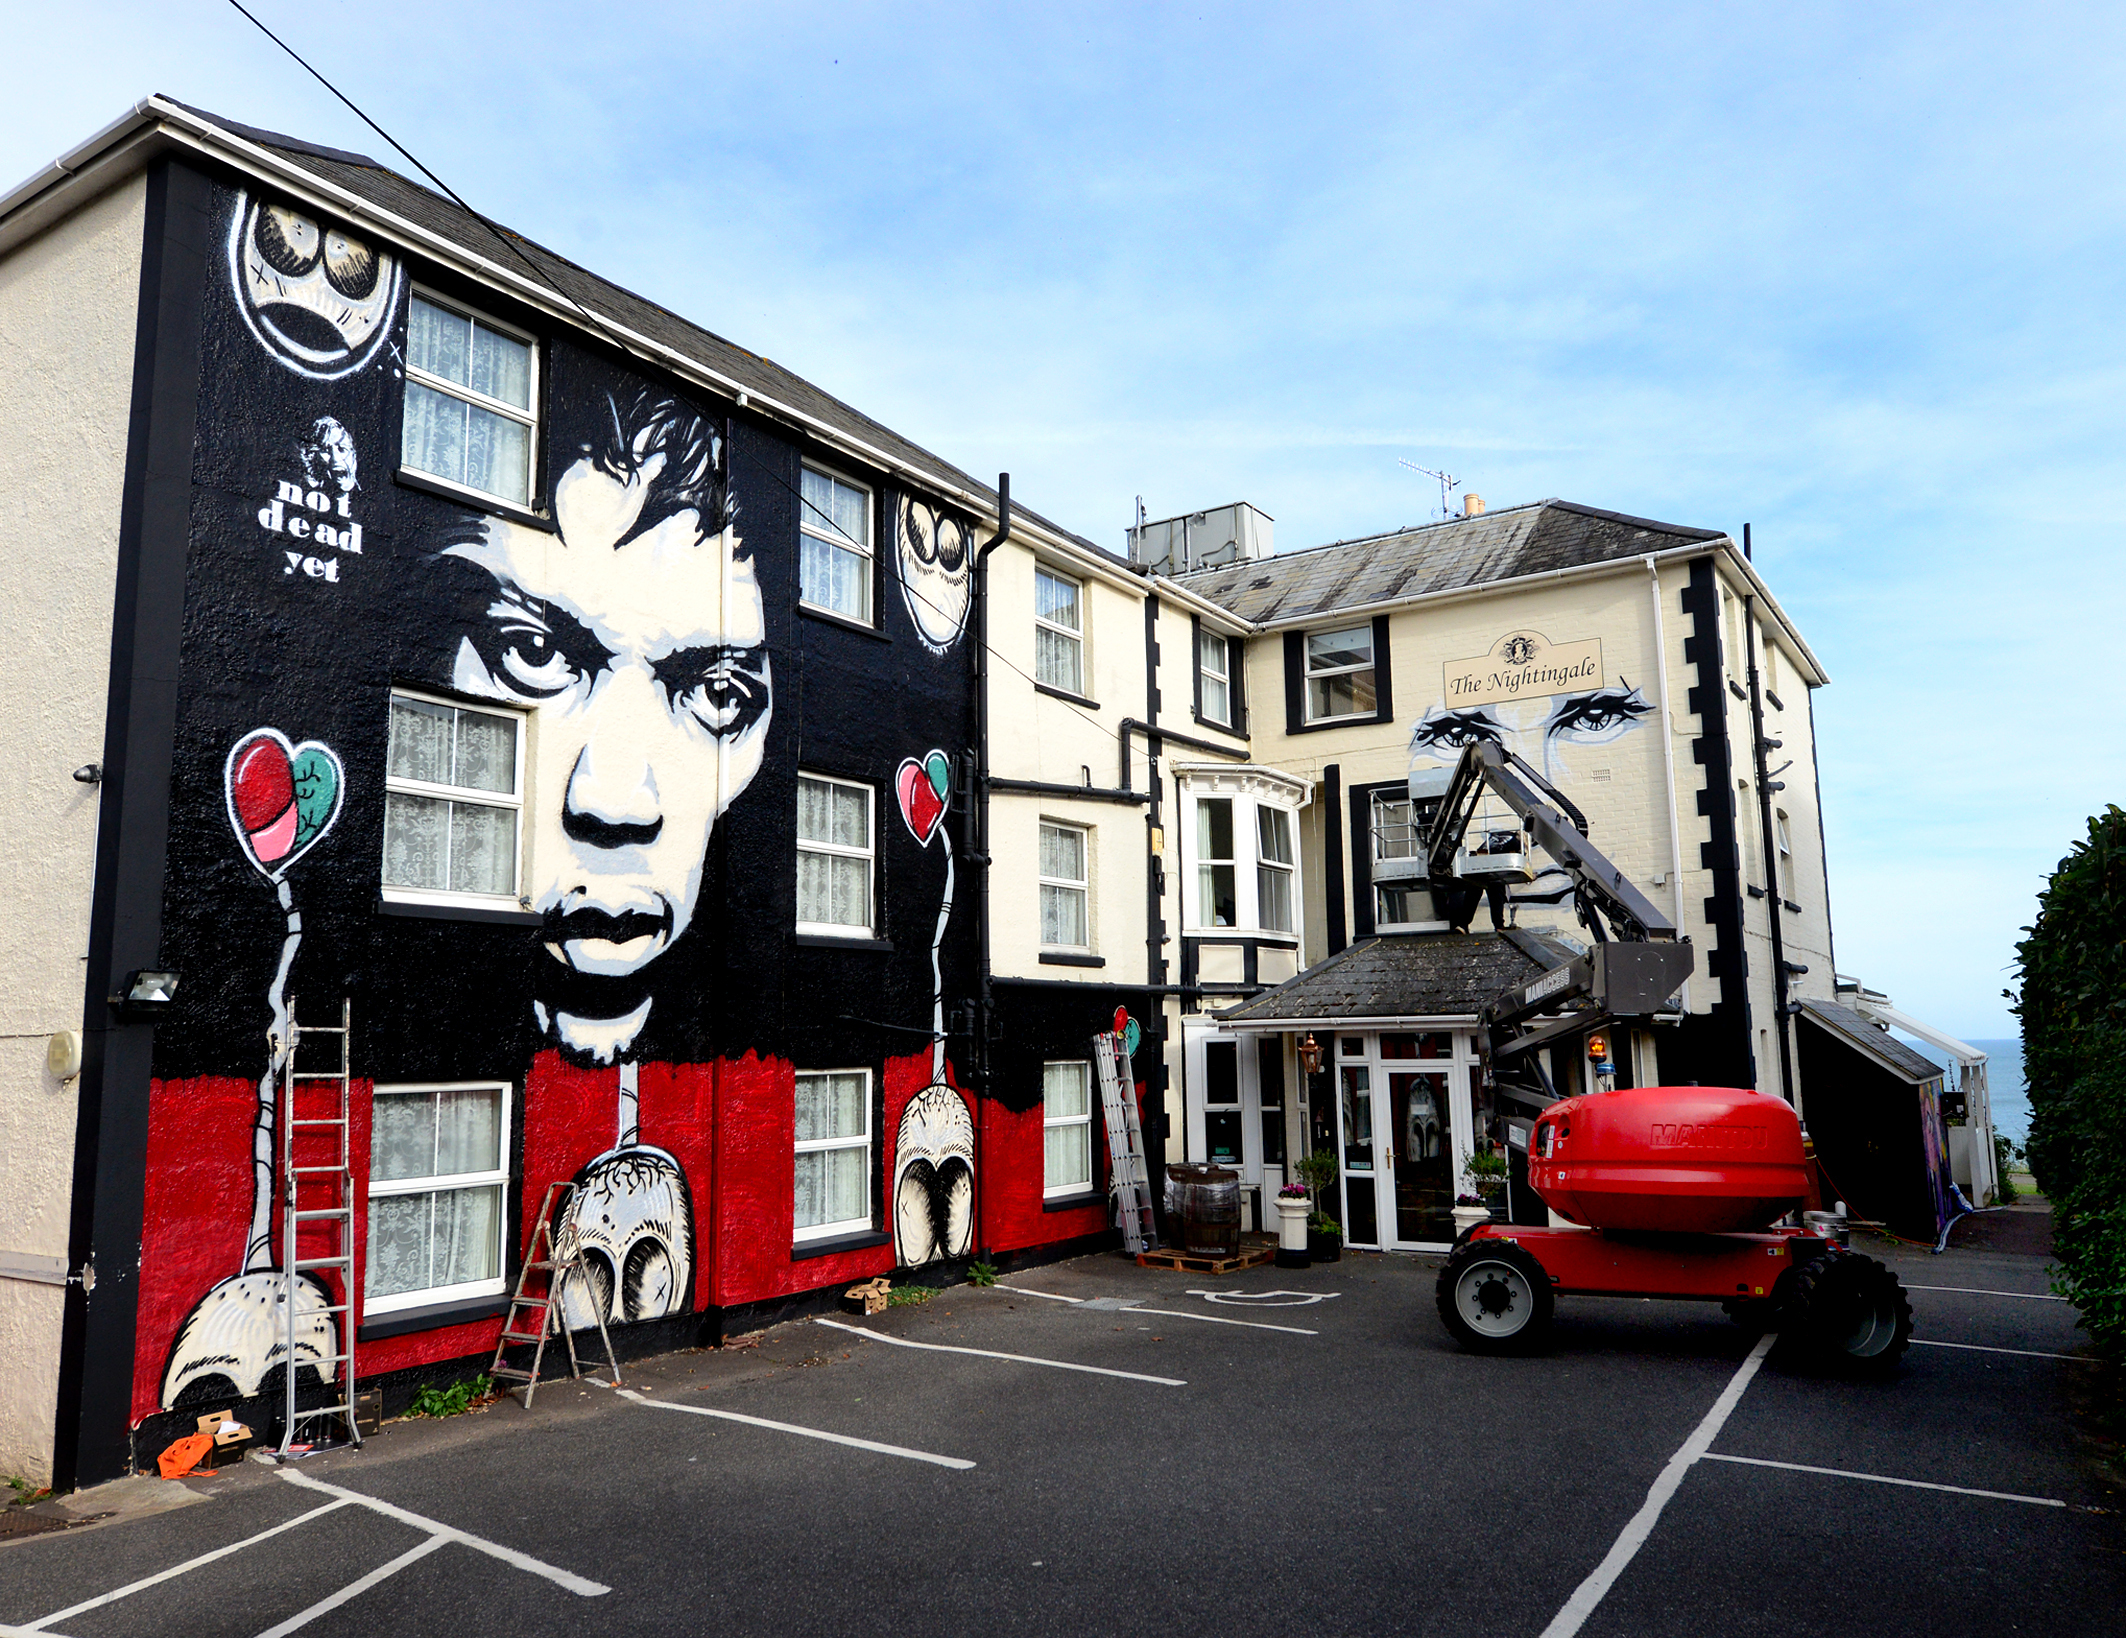 Shanklin - The Nightingale Hotel being spray painted by local artist Tony Trowbridge..